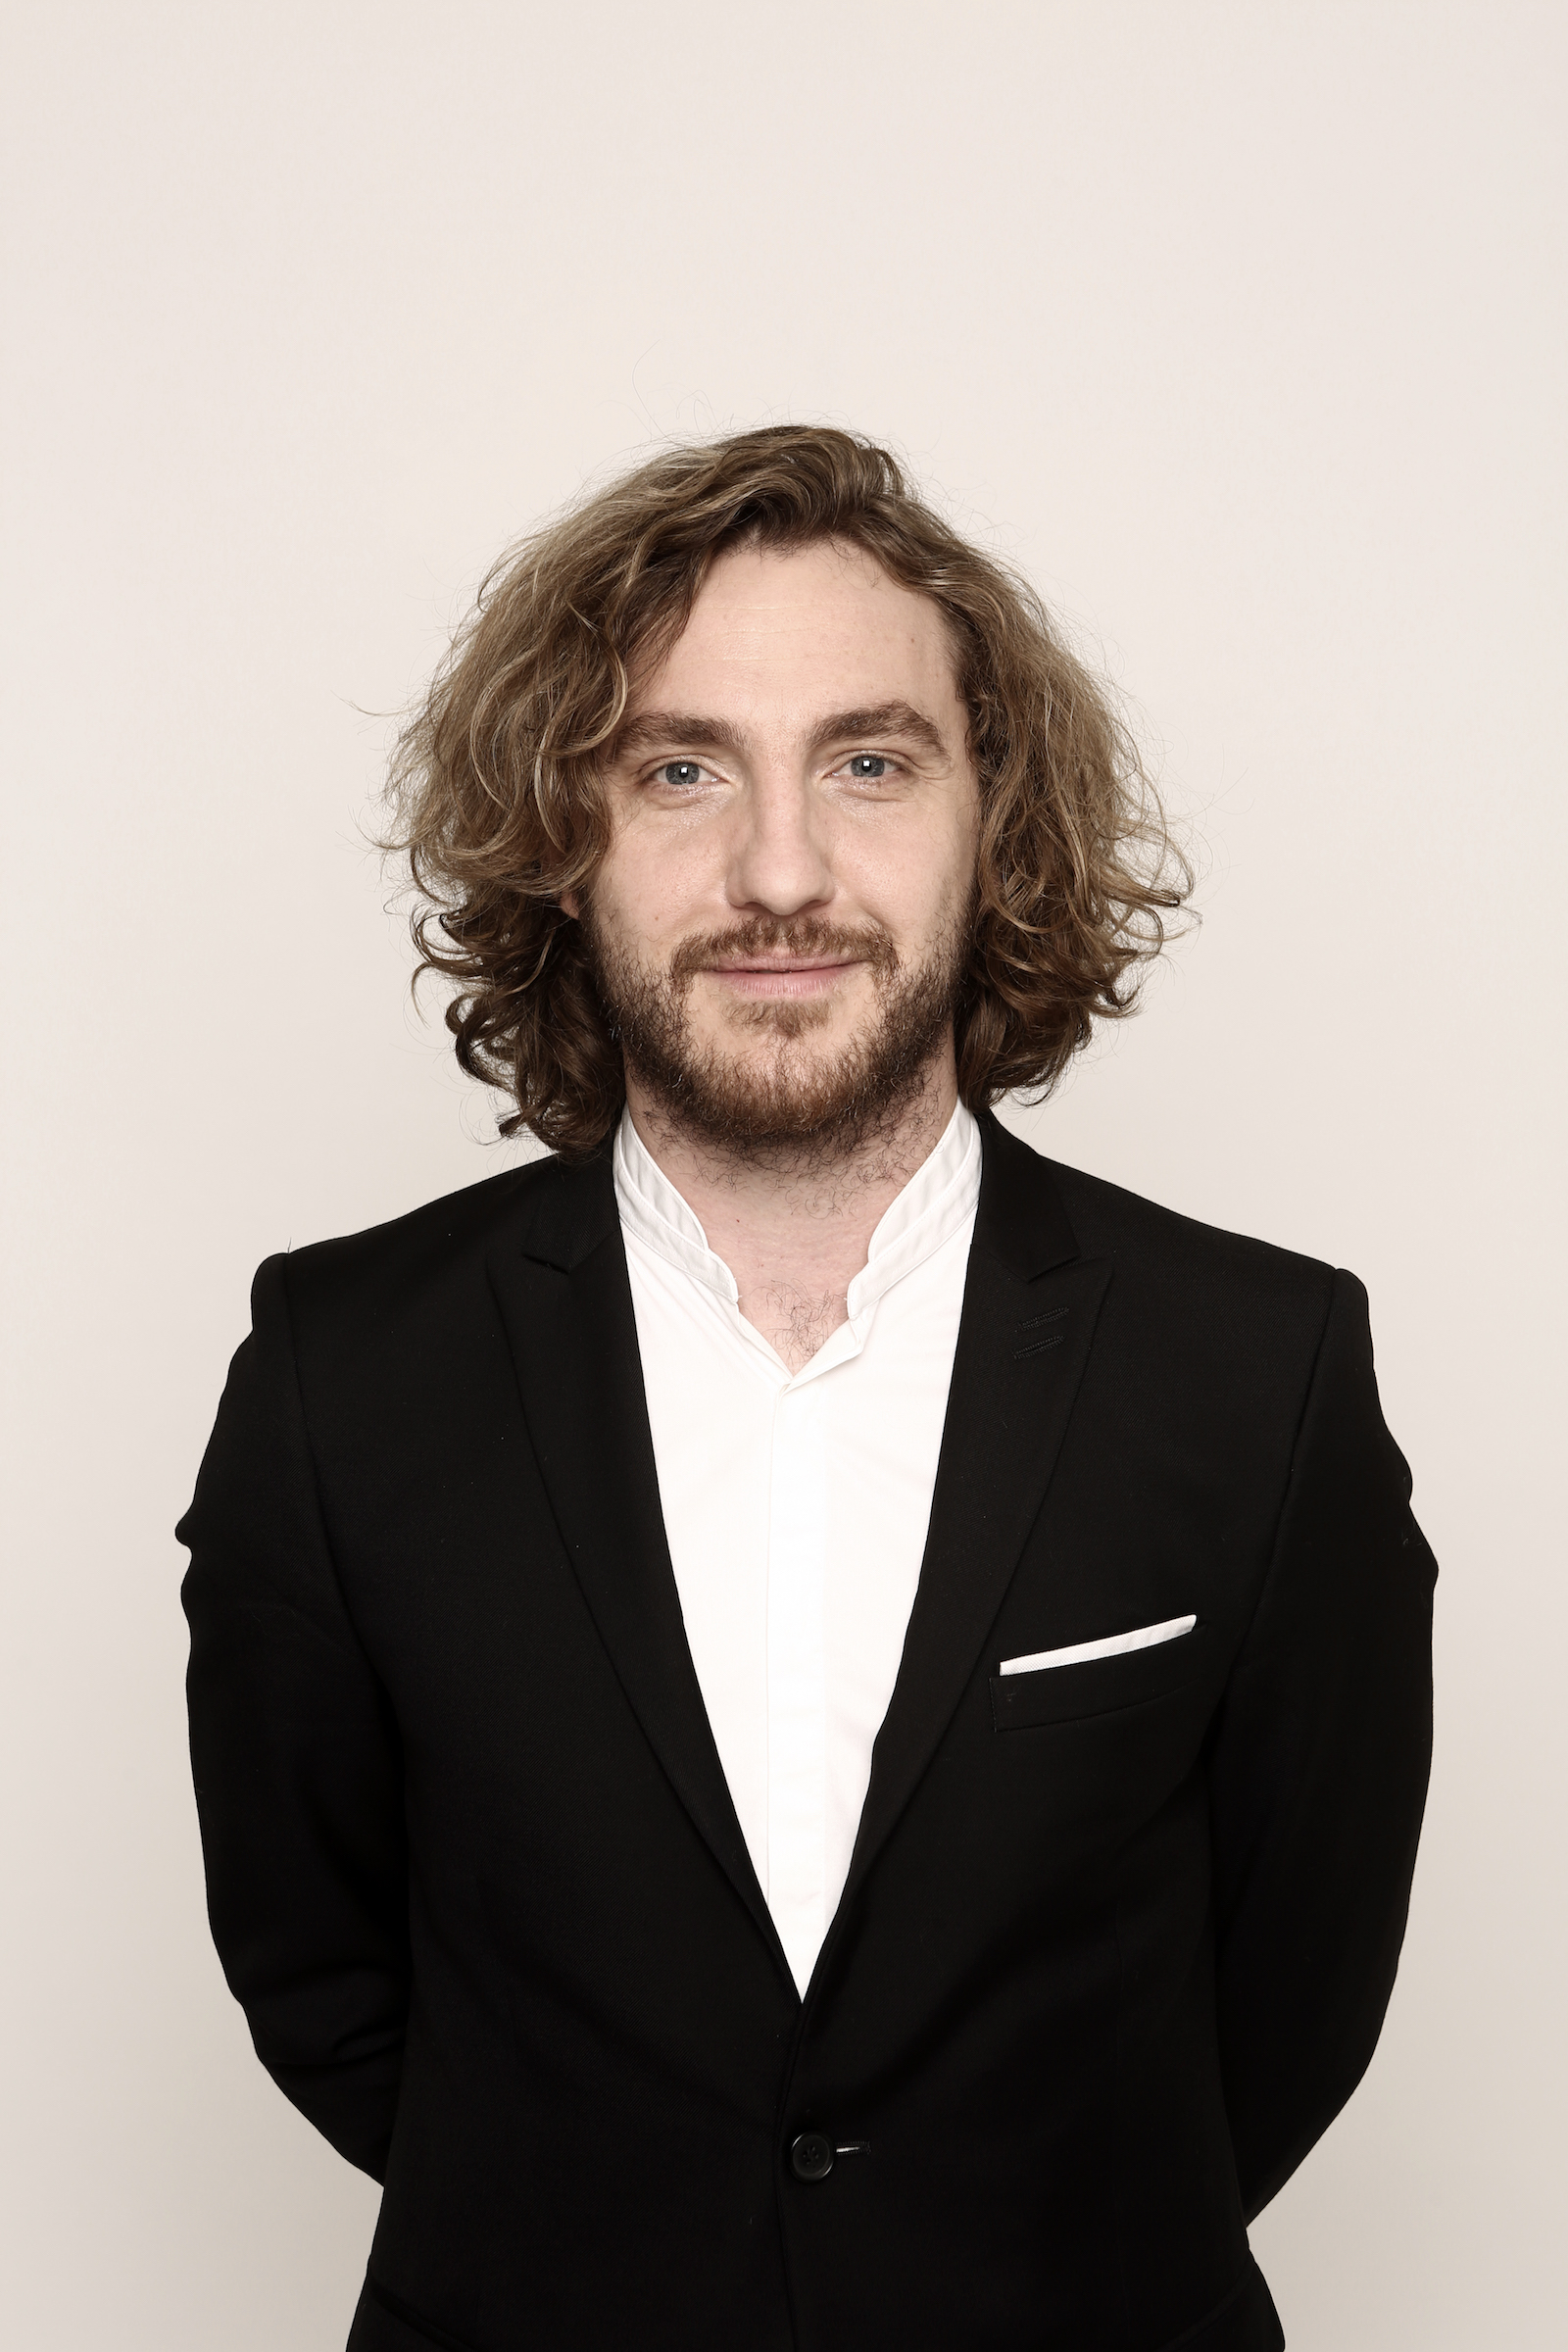 Seann Walsh - After This One, I'm Going Home